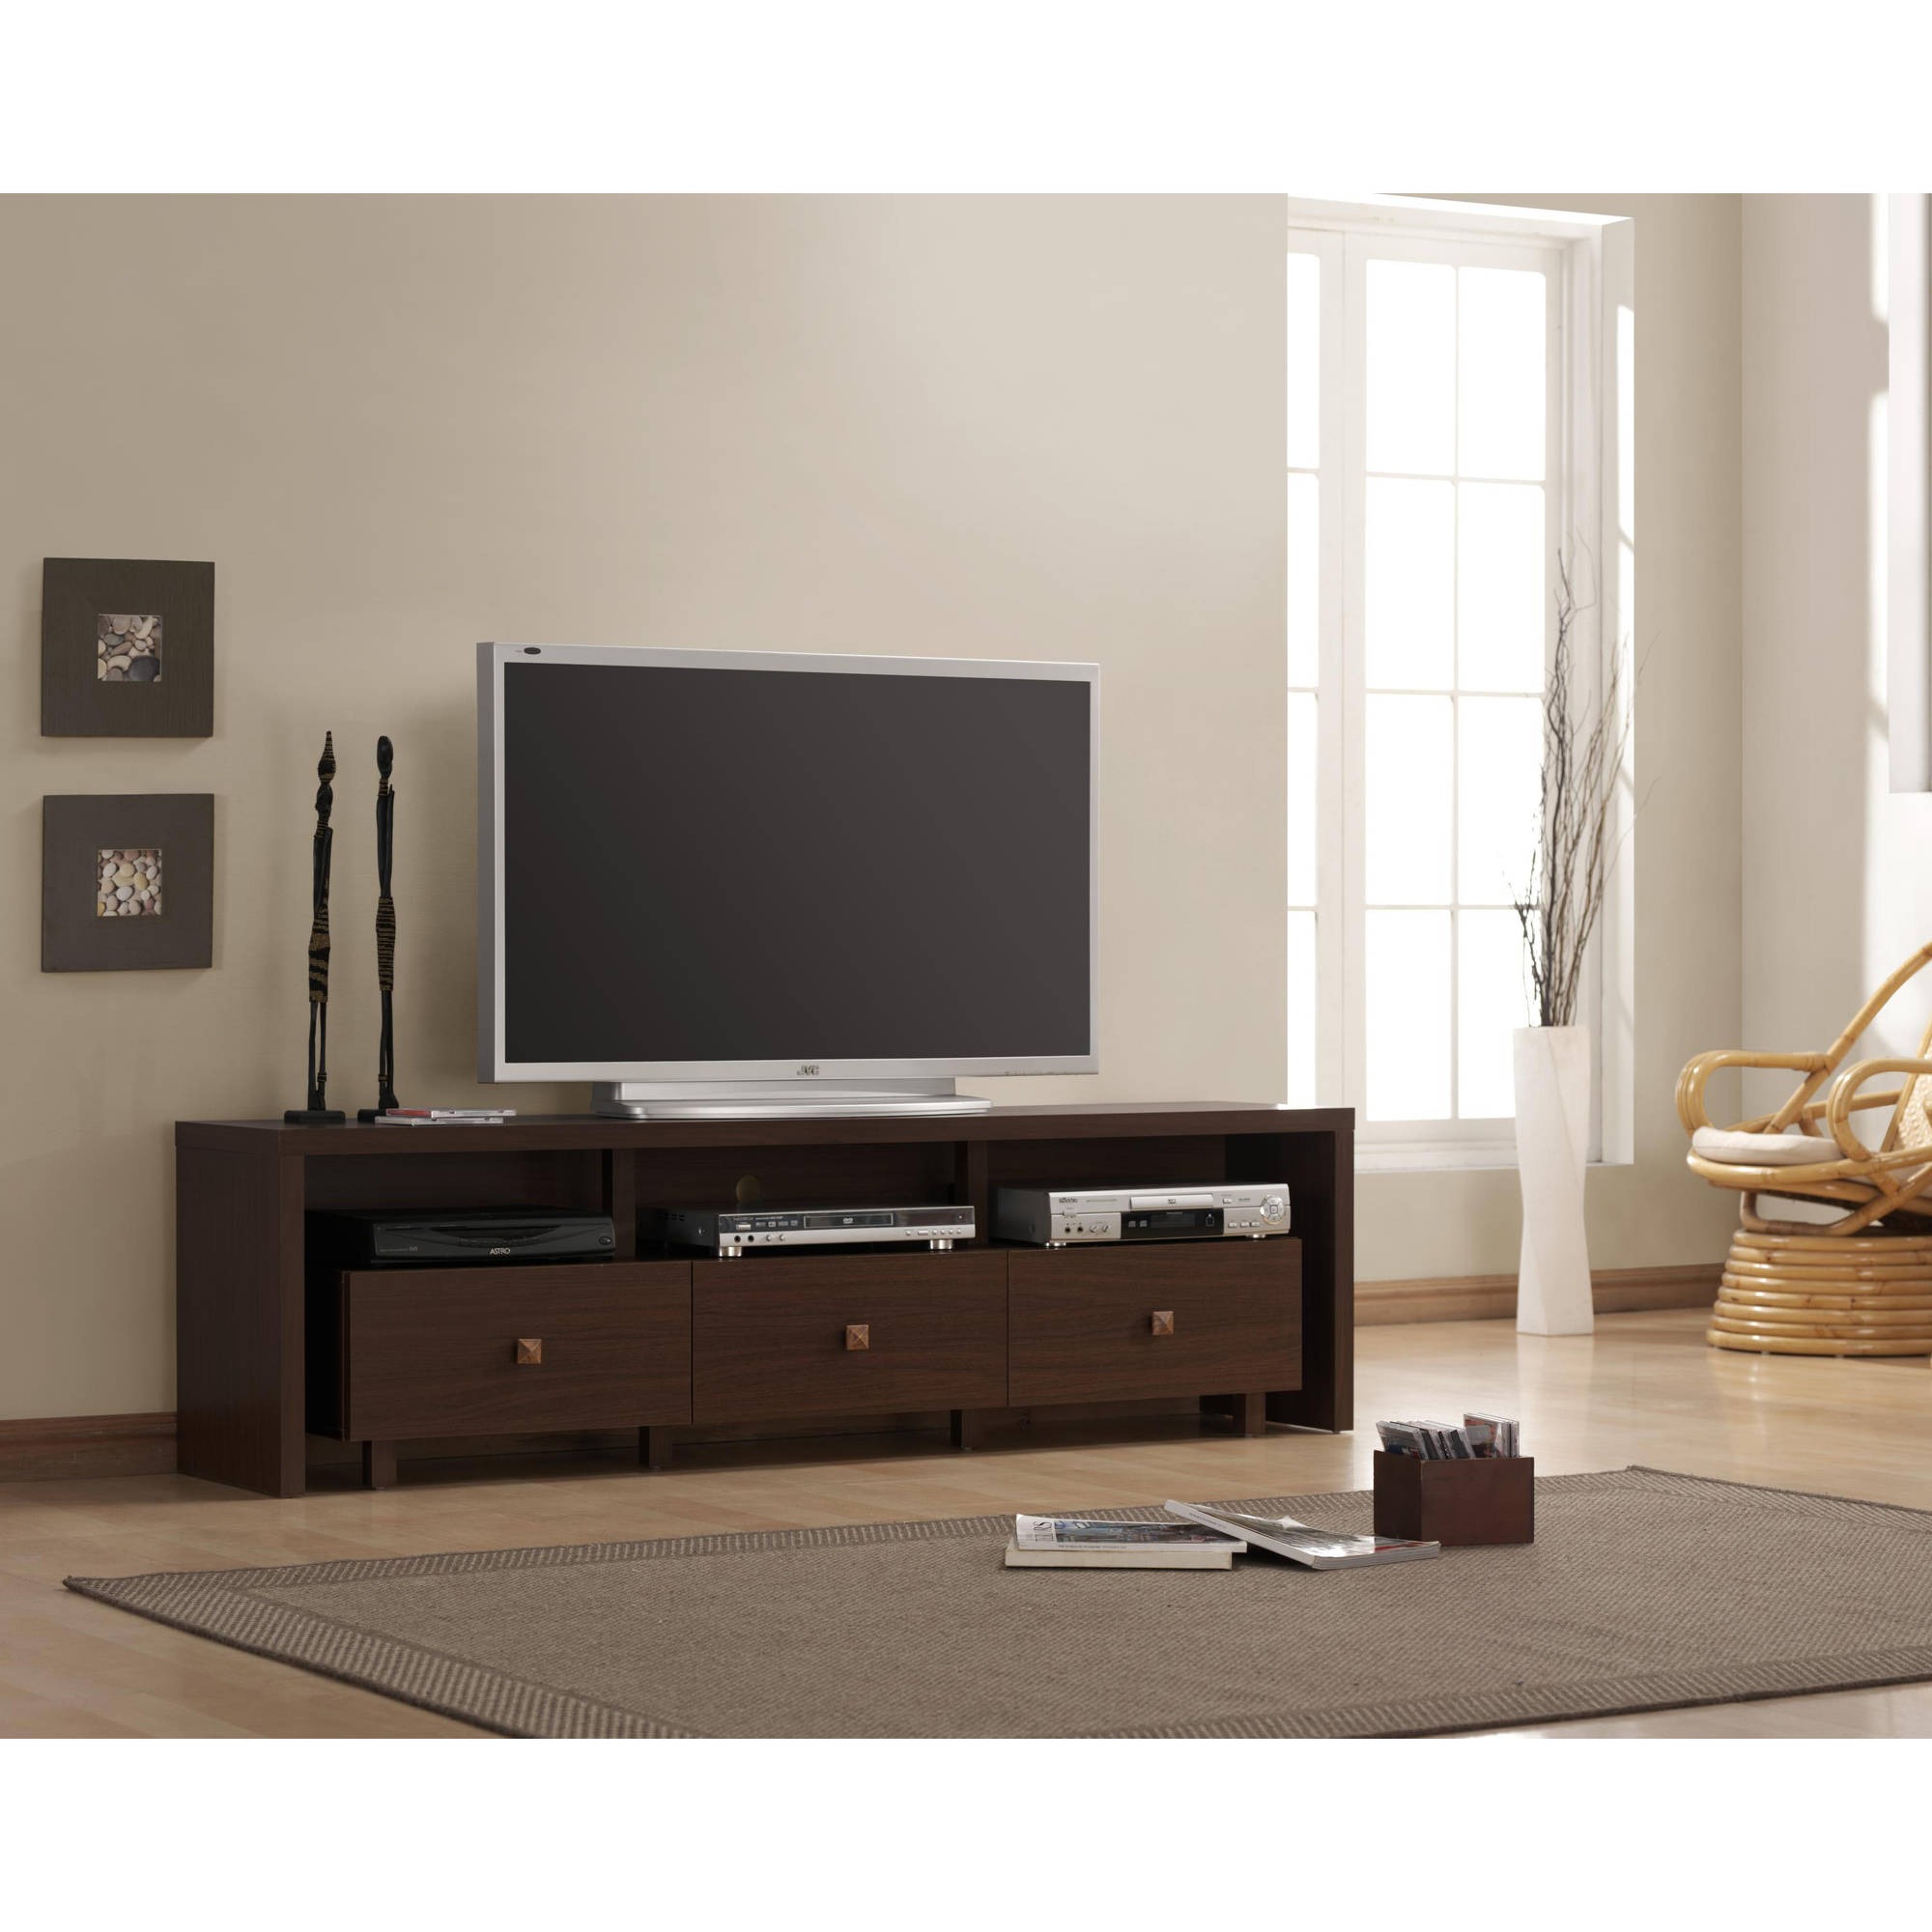 Techni Mobili Palma 3 Drawer TV Cabinet, Multiple finishes for TVs up to 70""